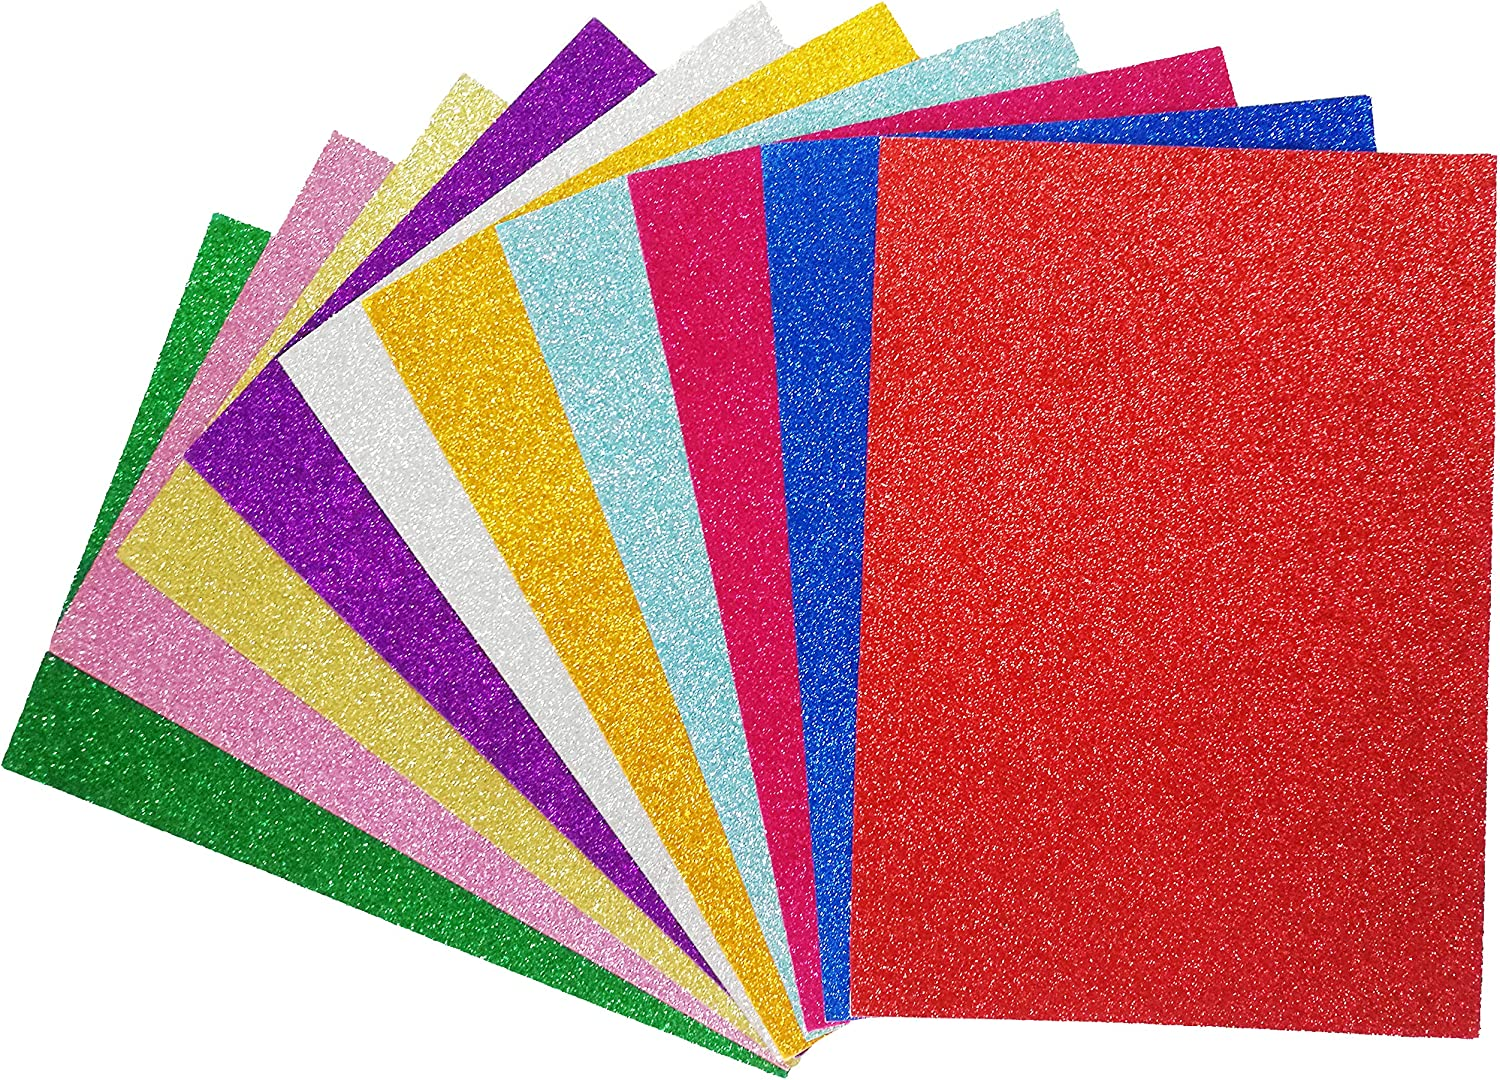 Glitter Cardstock Memphis Mall Paper-A4 Wrapping-Scrapbook- for Paper Latest item